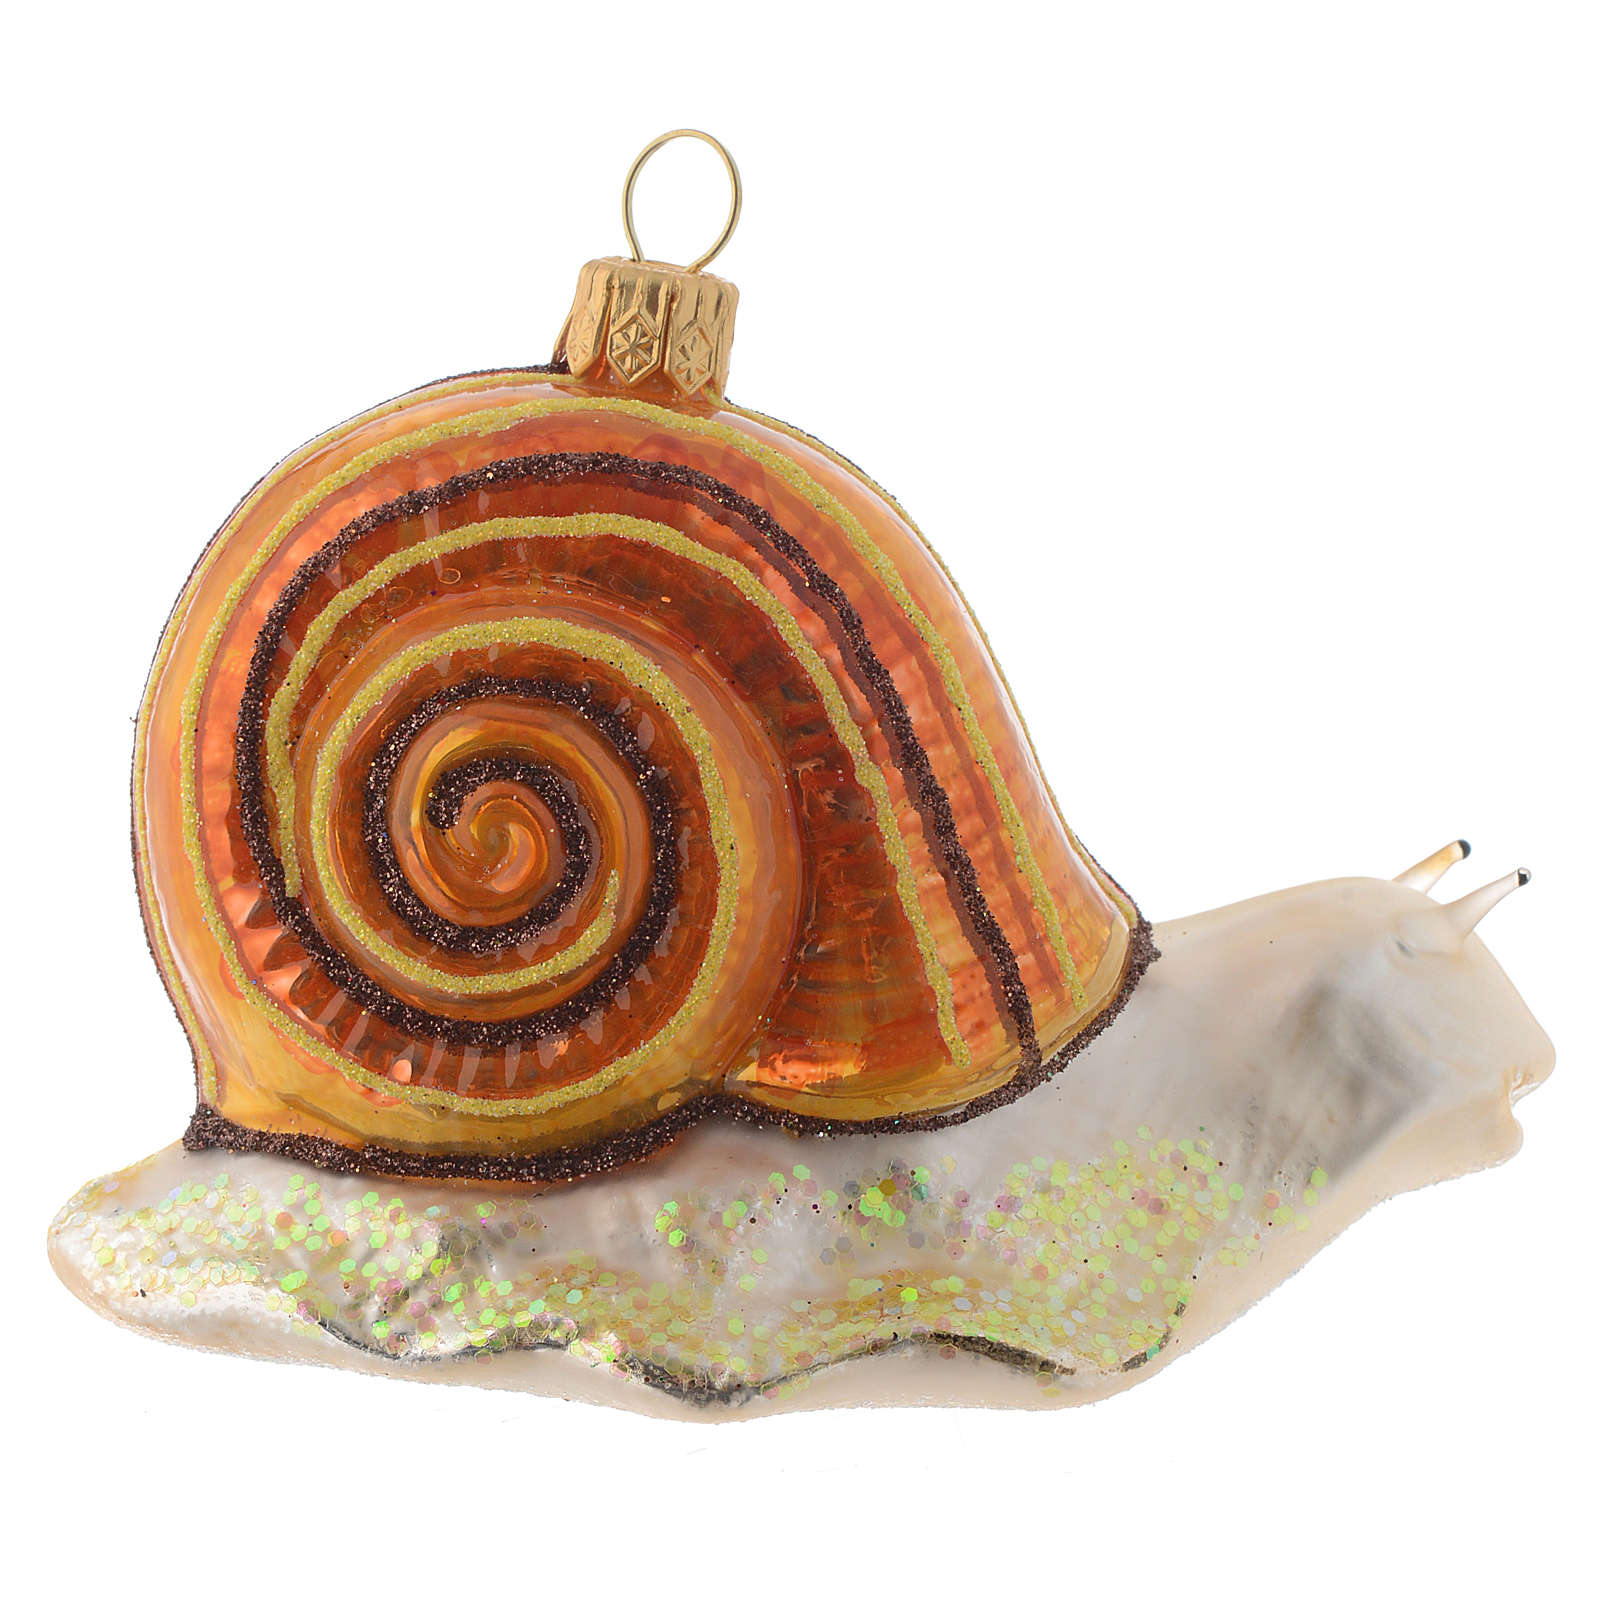 Blown glass Christmas ornament, snail 4